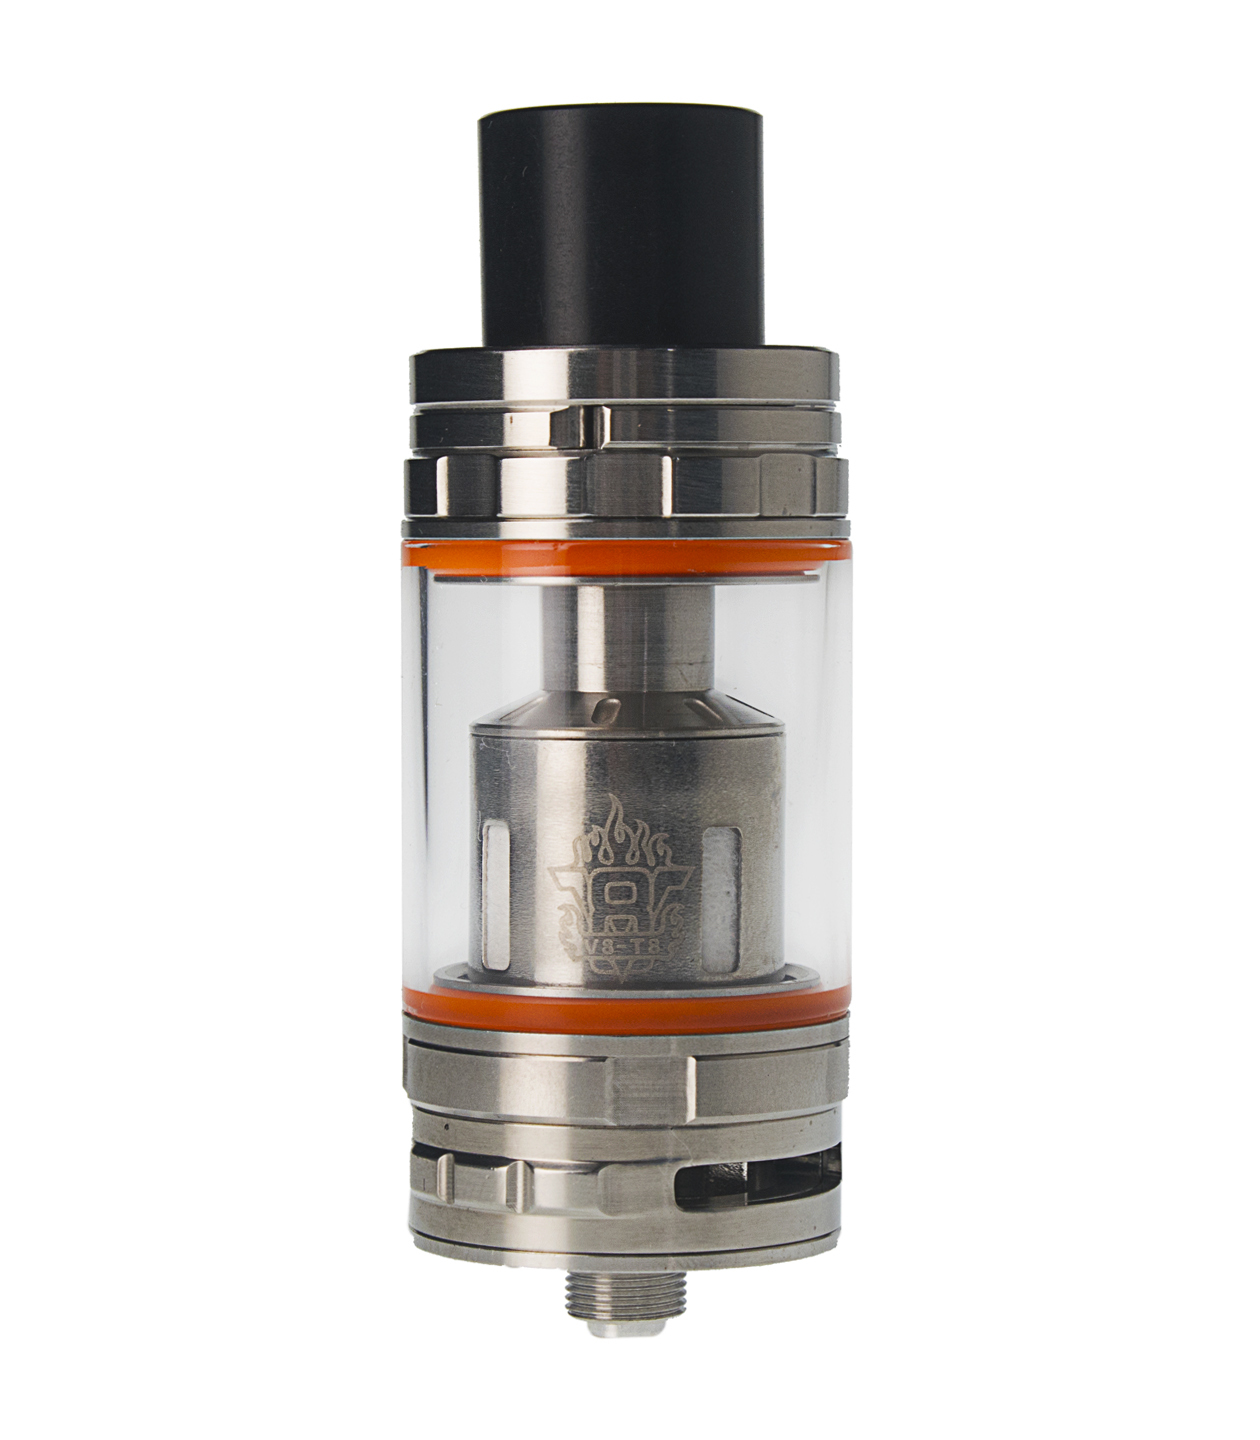 TFV8 RTA Cloud Beast